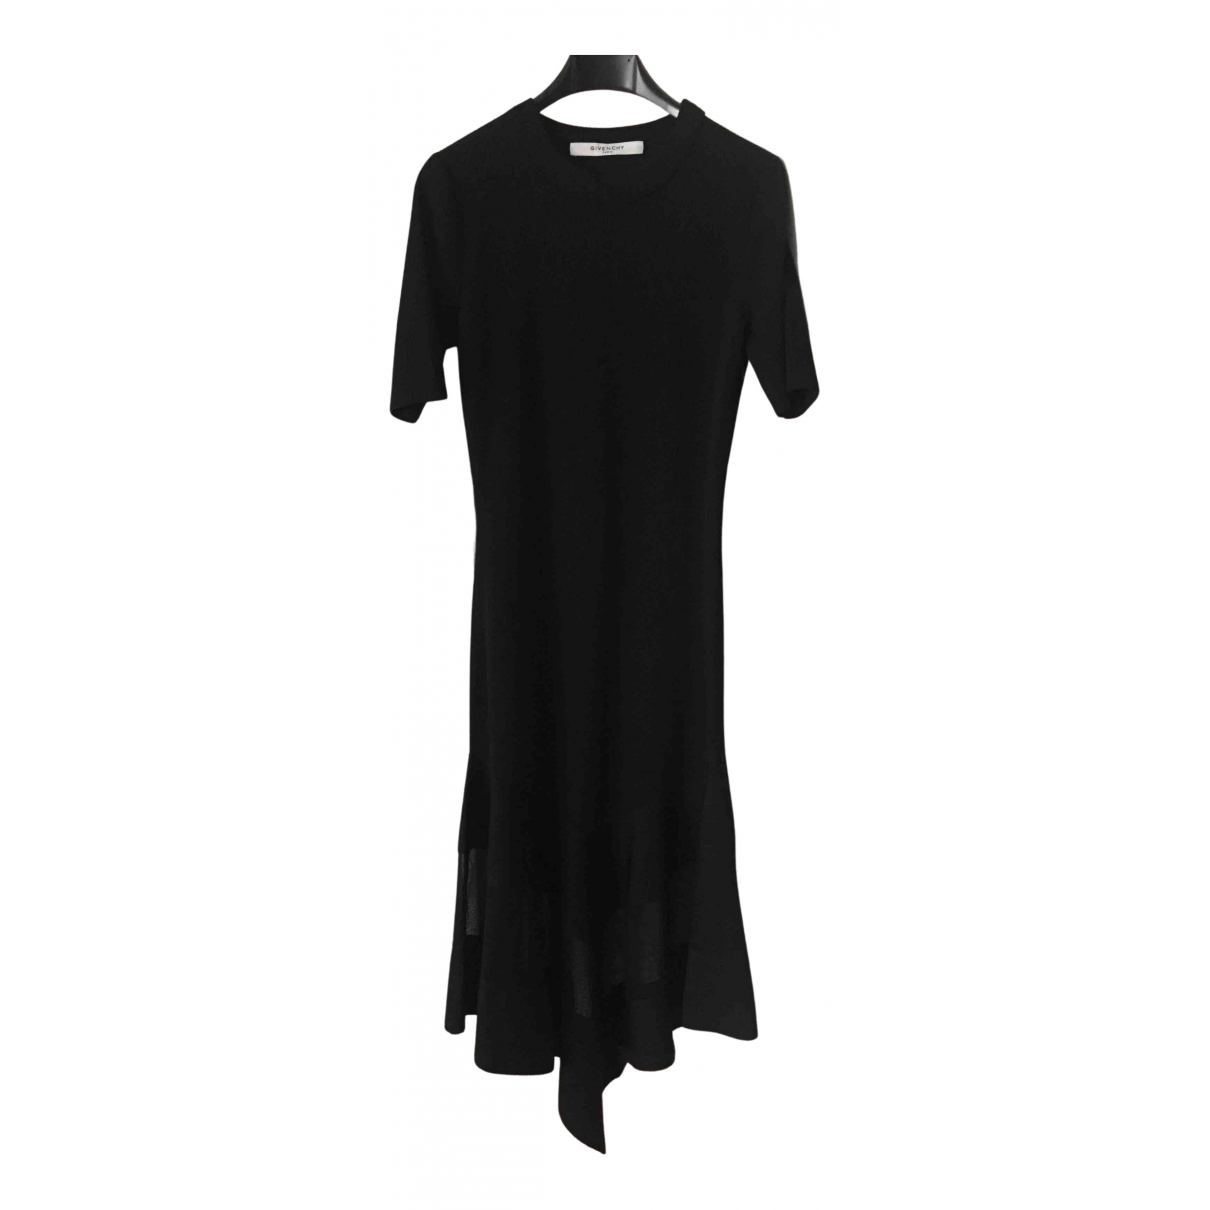 Givenchy N Black dress for Women XS International